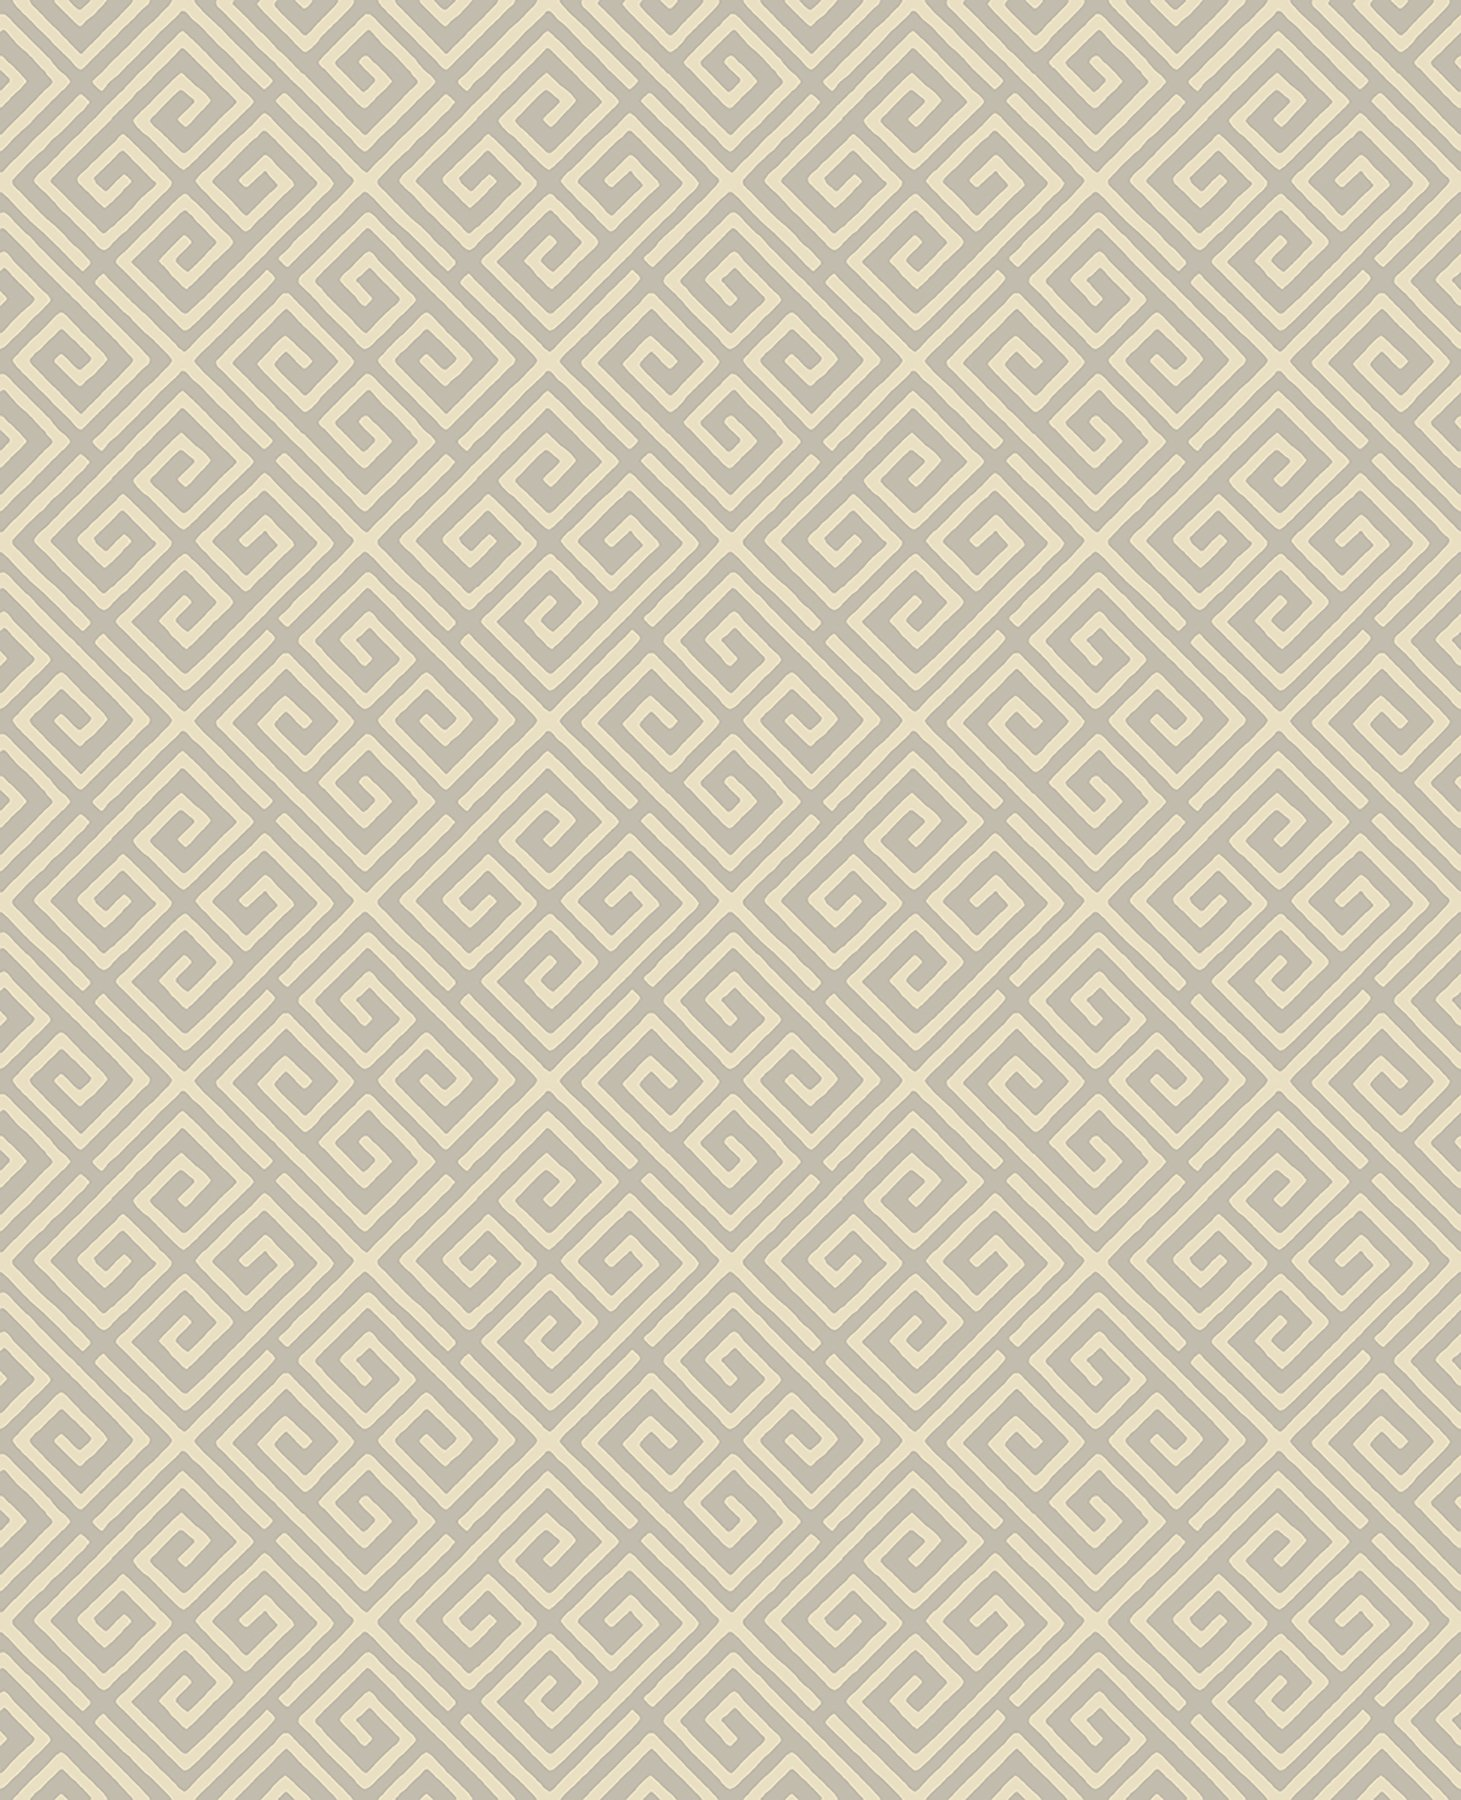 A-Street Prints 2625-21861 Omega Geometric Wallpaper, Taupe by A-Street Prints